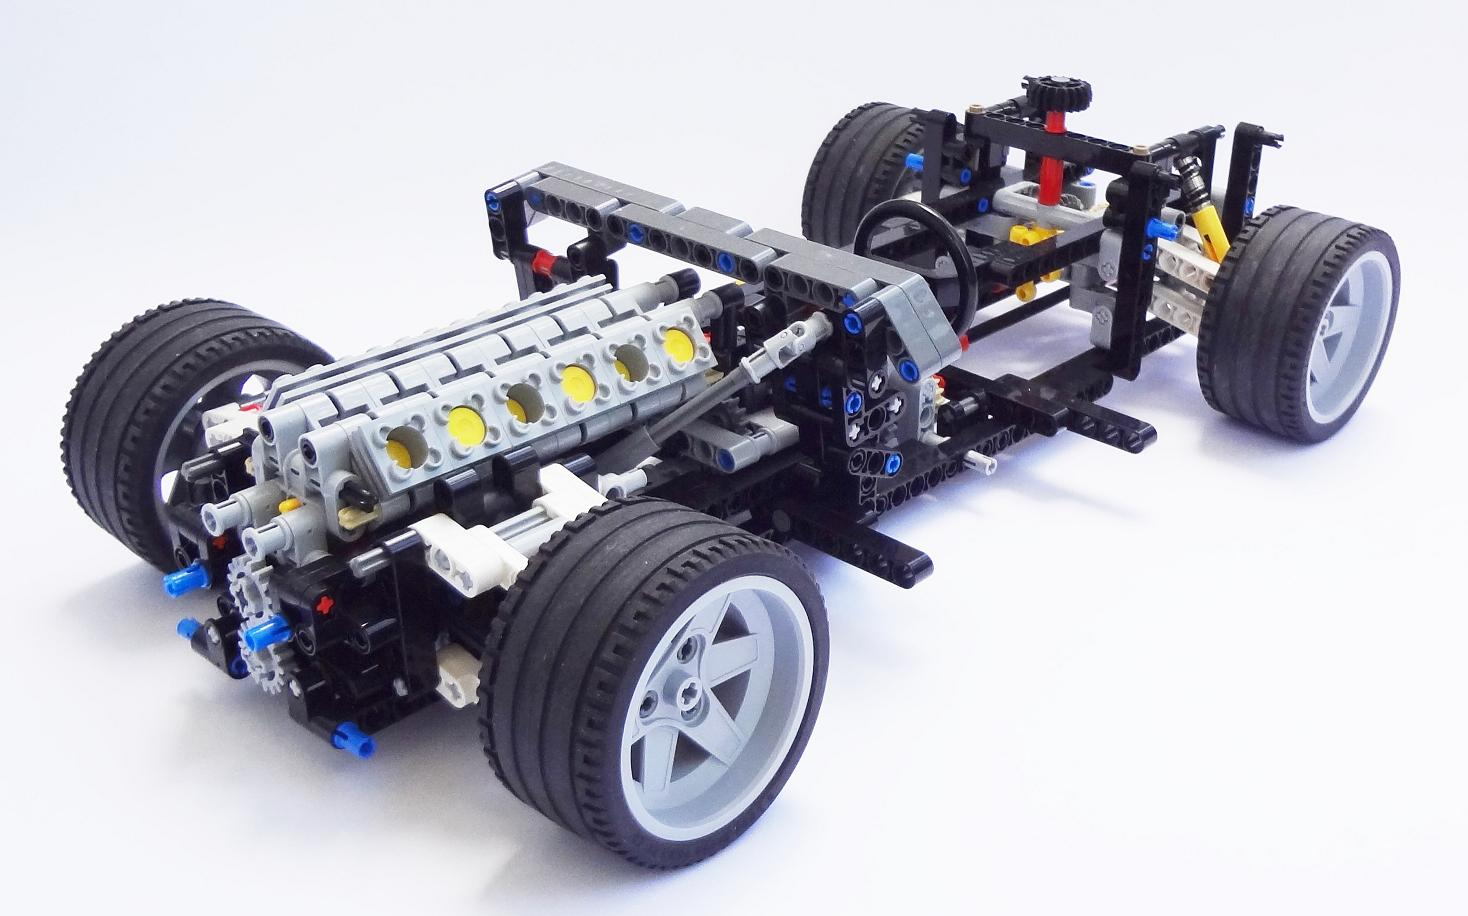 lego technic car chassis the lego car blog. Black Bedroom Furniture Sets. Home Design Ideas